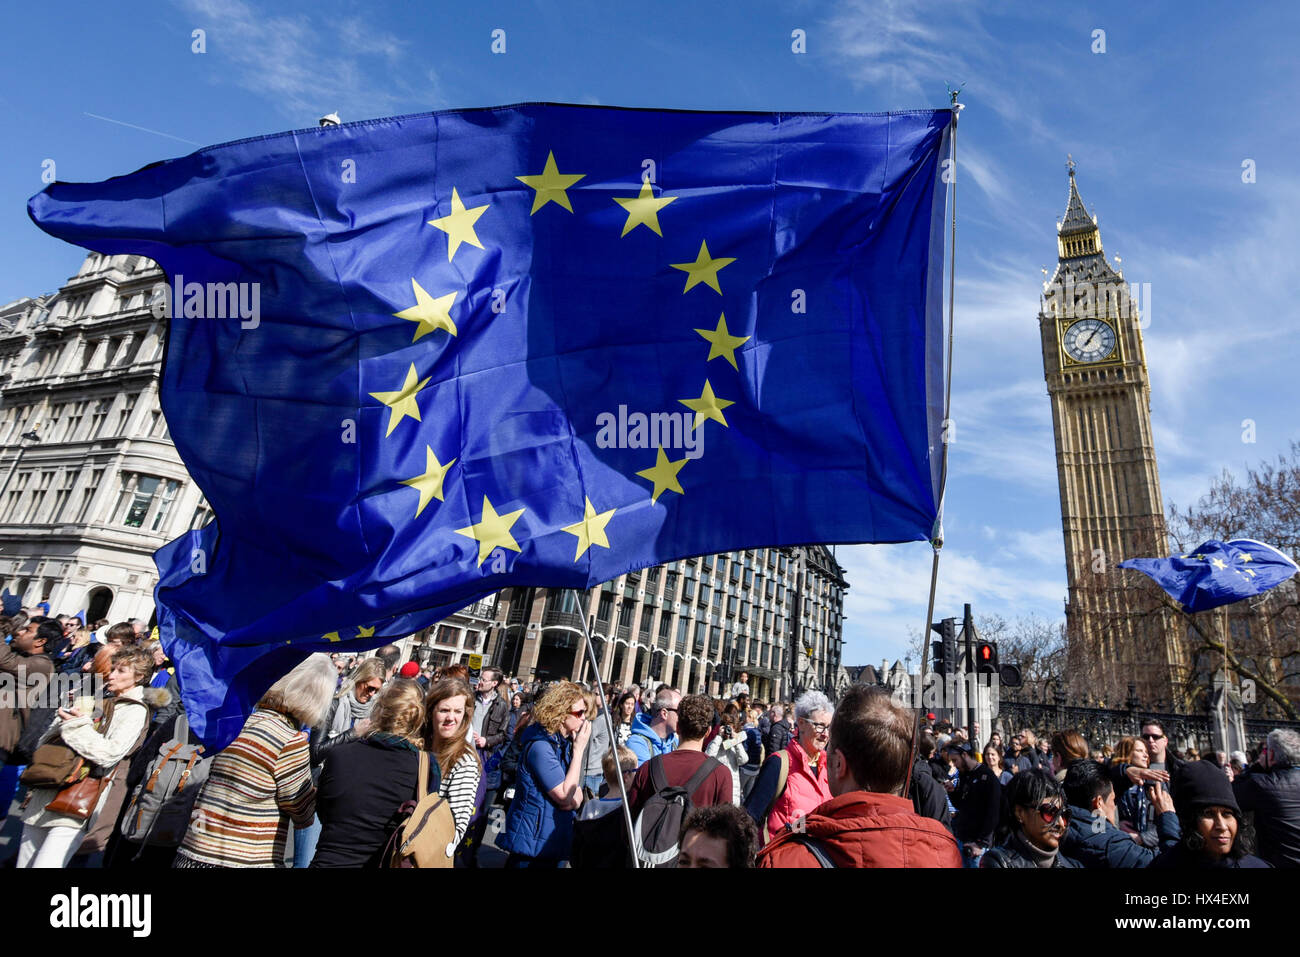 London, UK.  25 March 2017. European Union flags are held aloft as aAnti-Brexit demonstrators take part in a march - Stock Image